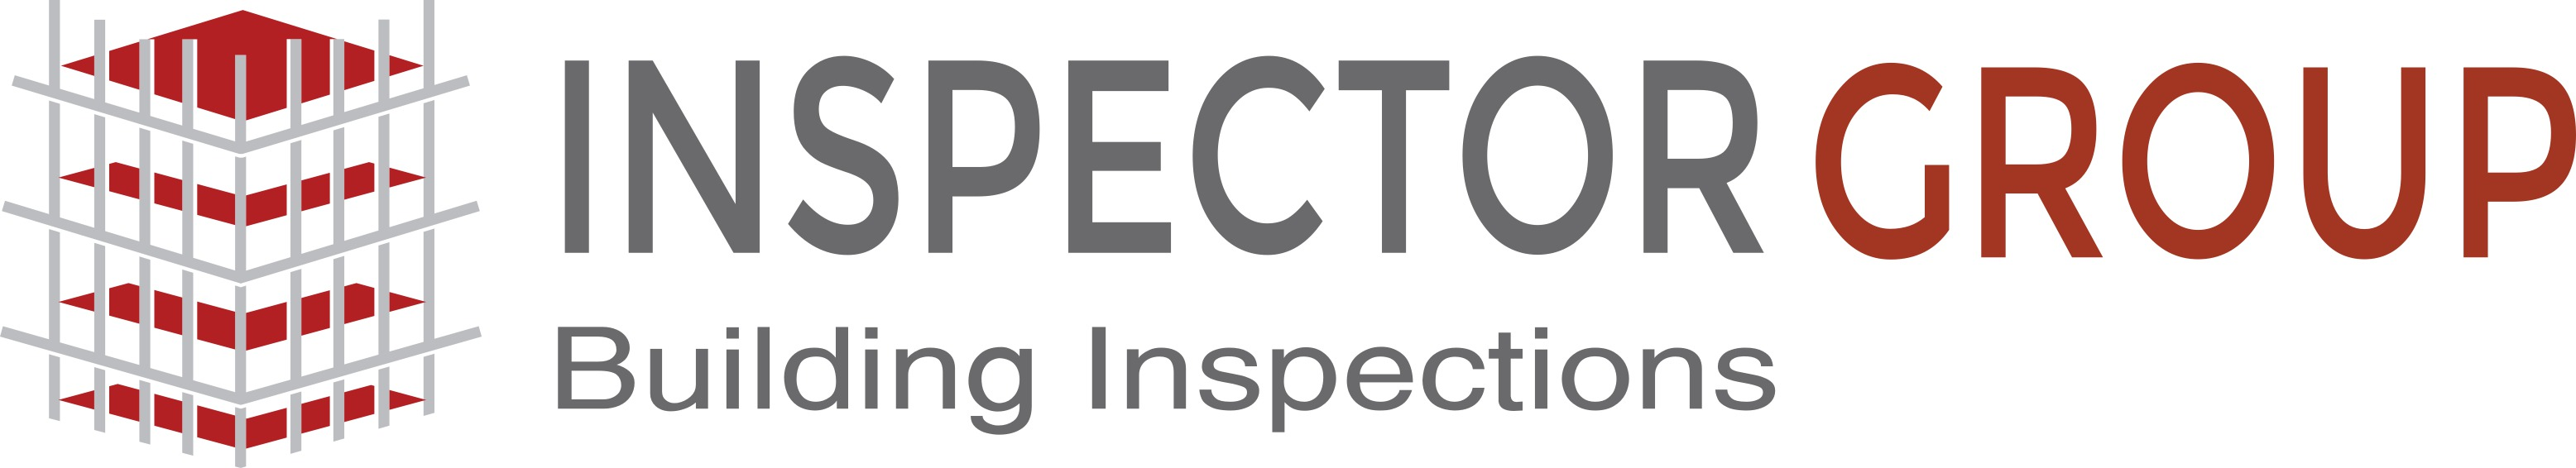 Inspector Group* Building Inspections Perth